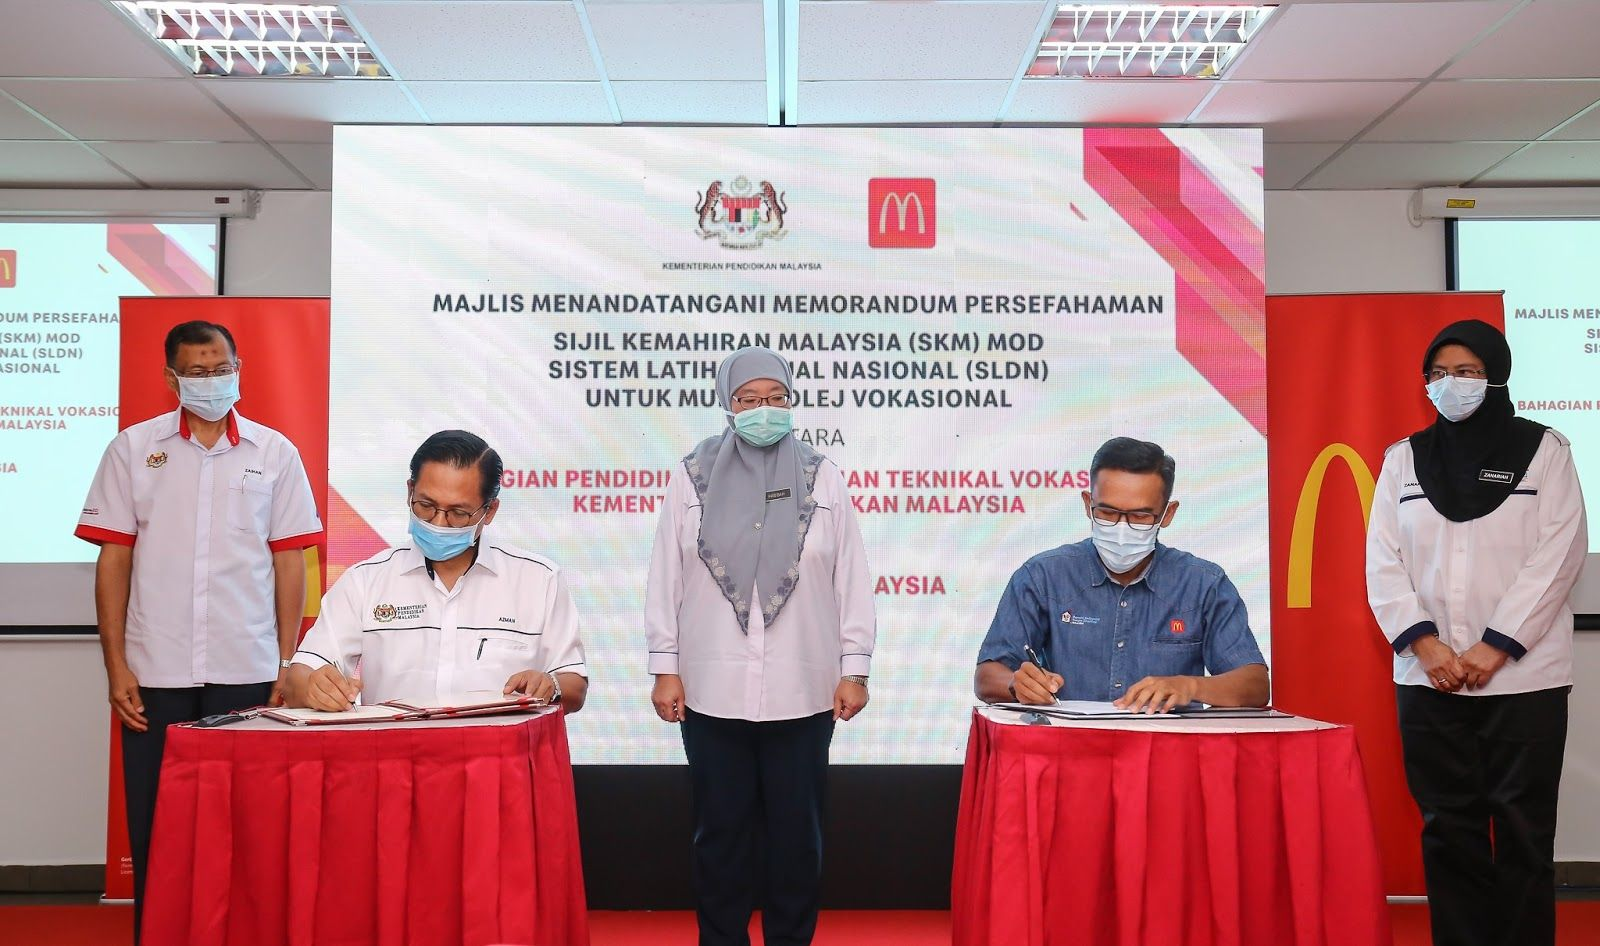 Vocational education opportunities for secondary students